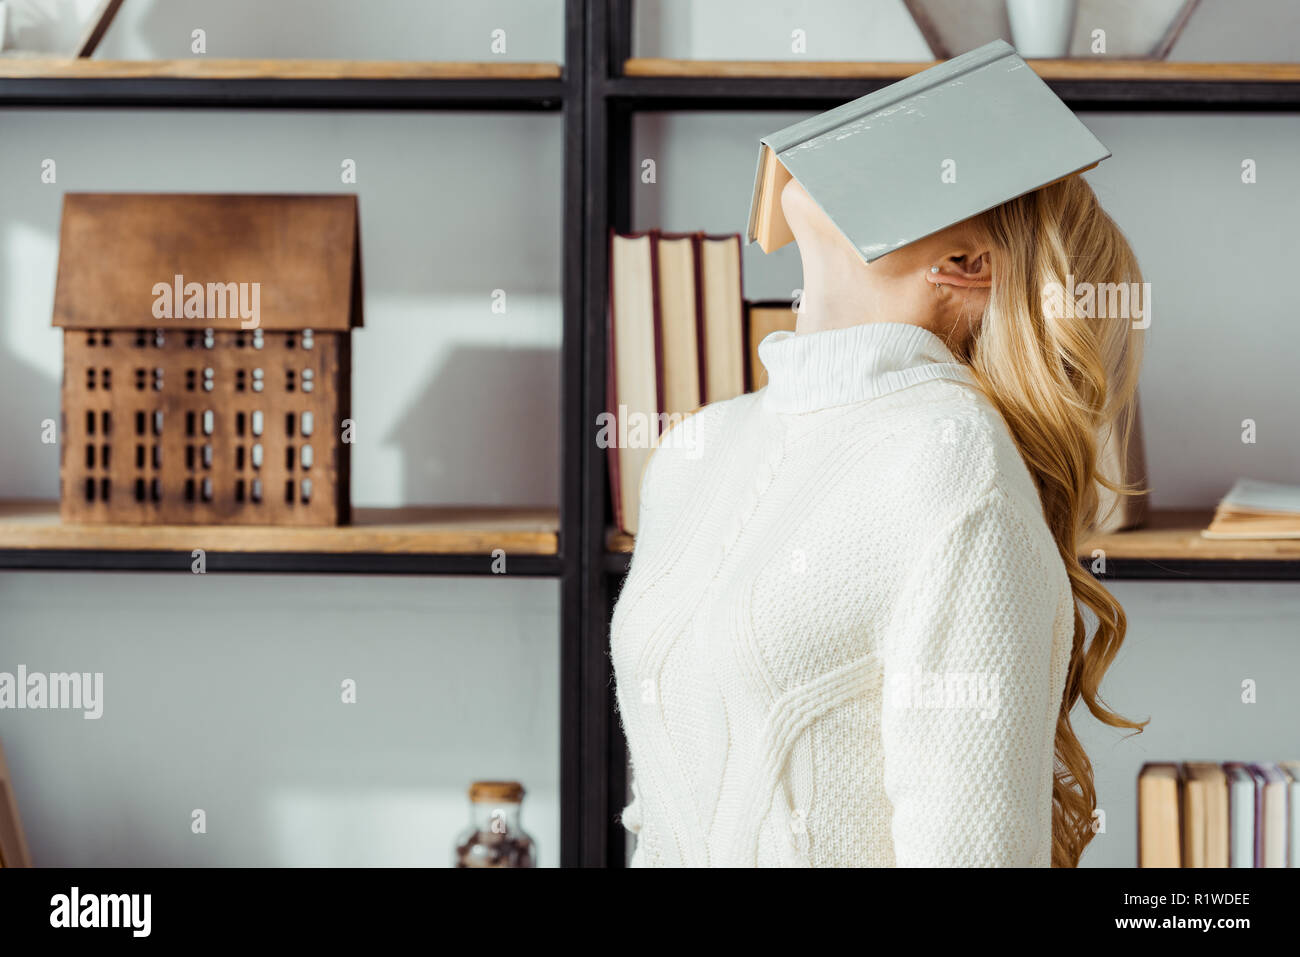 blonde woman putting book on face near rack - Stock Image